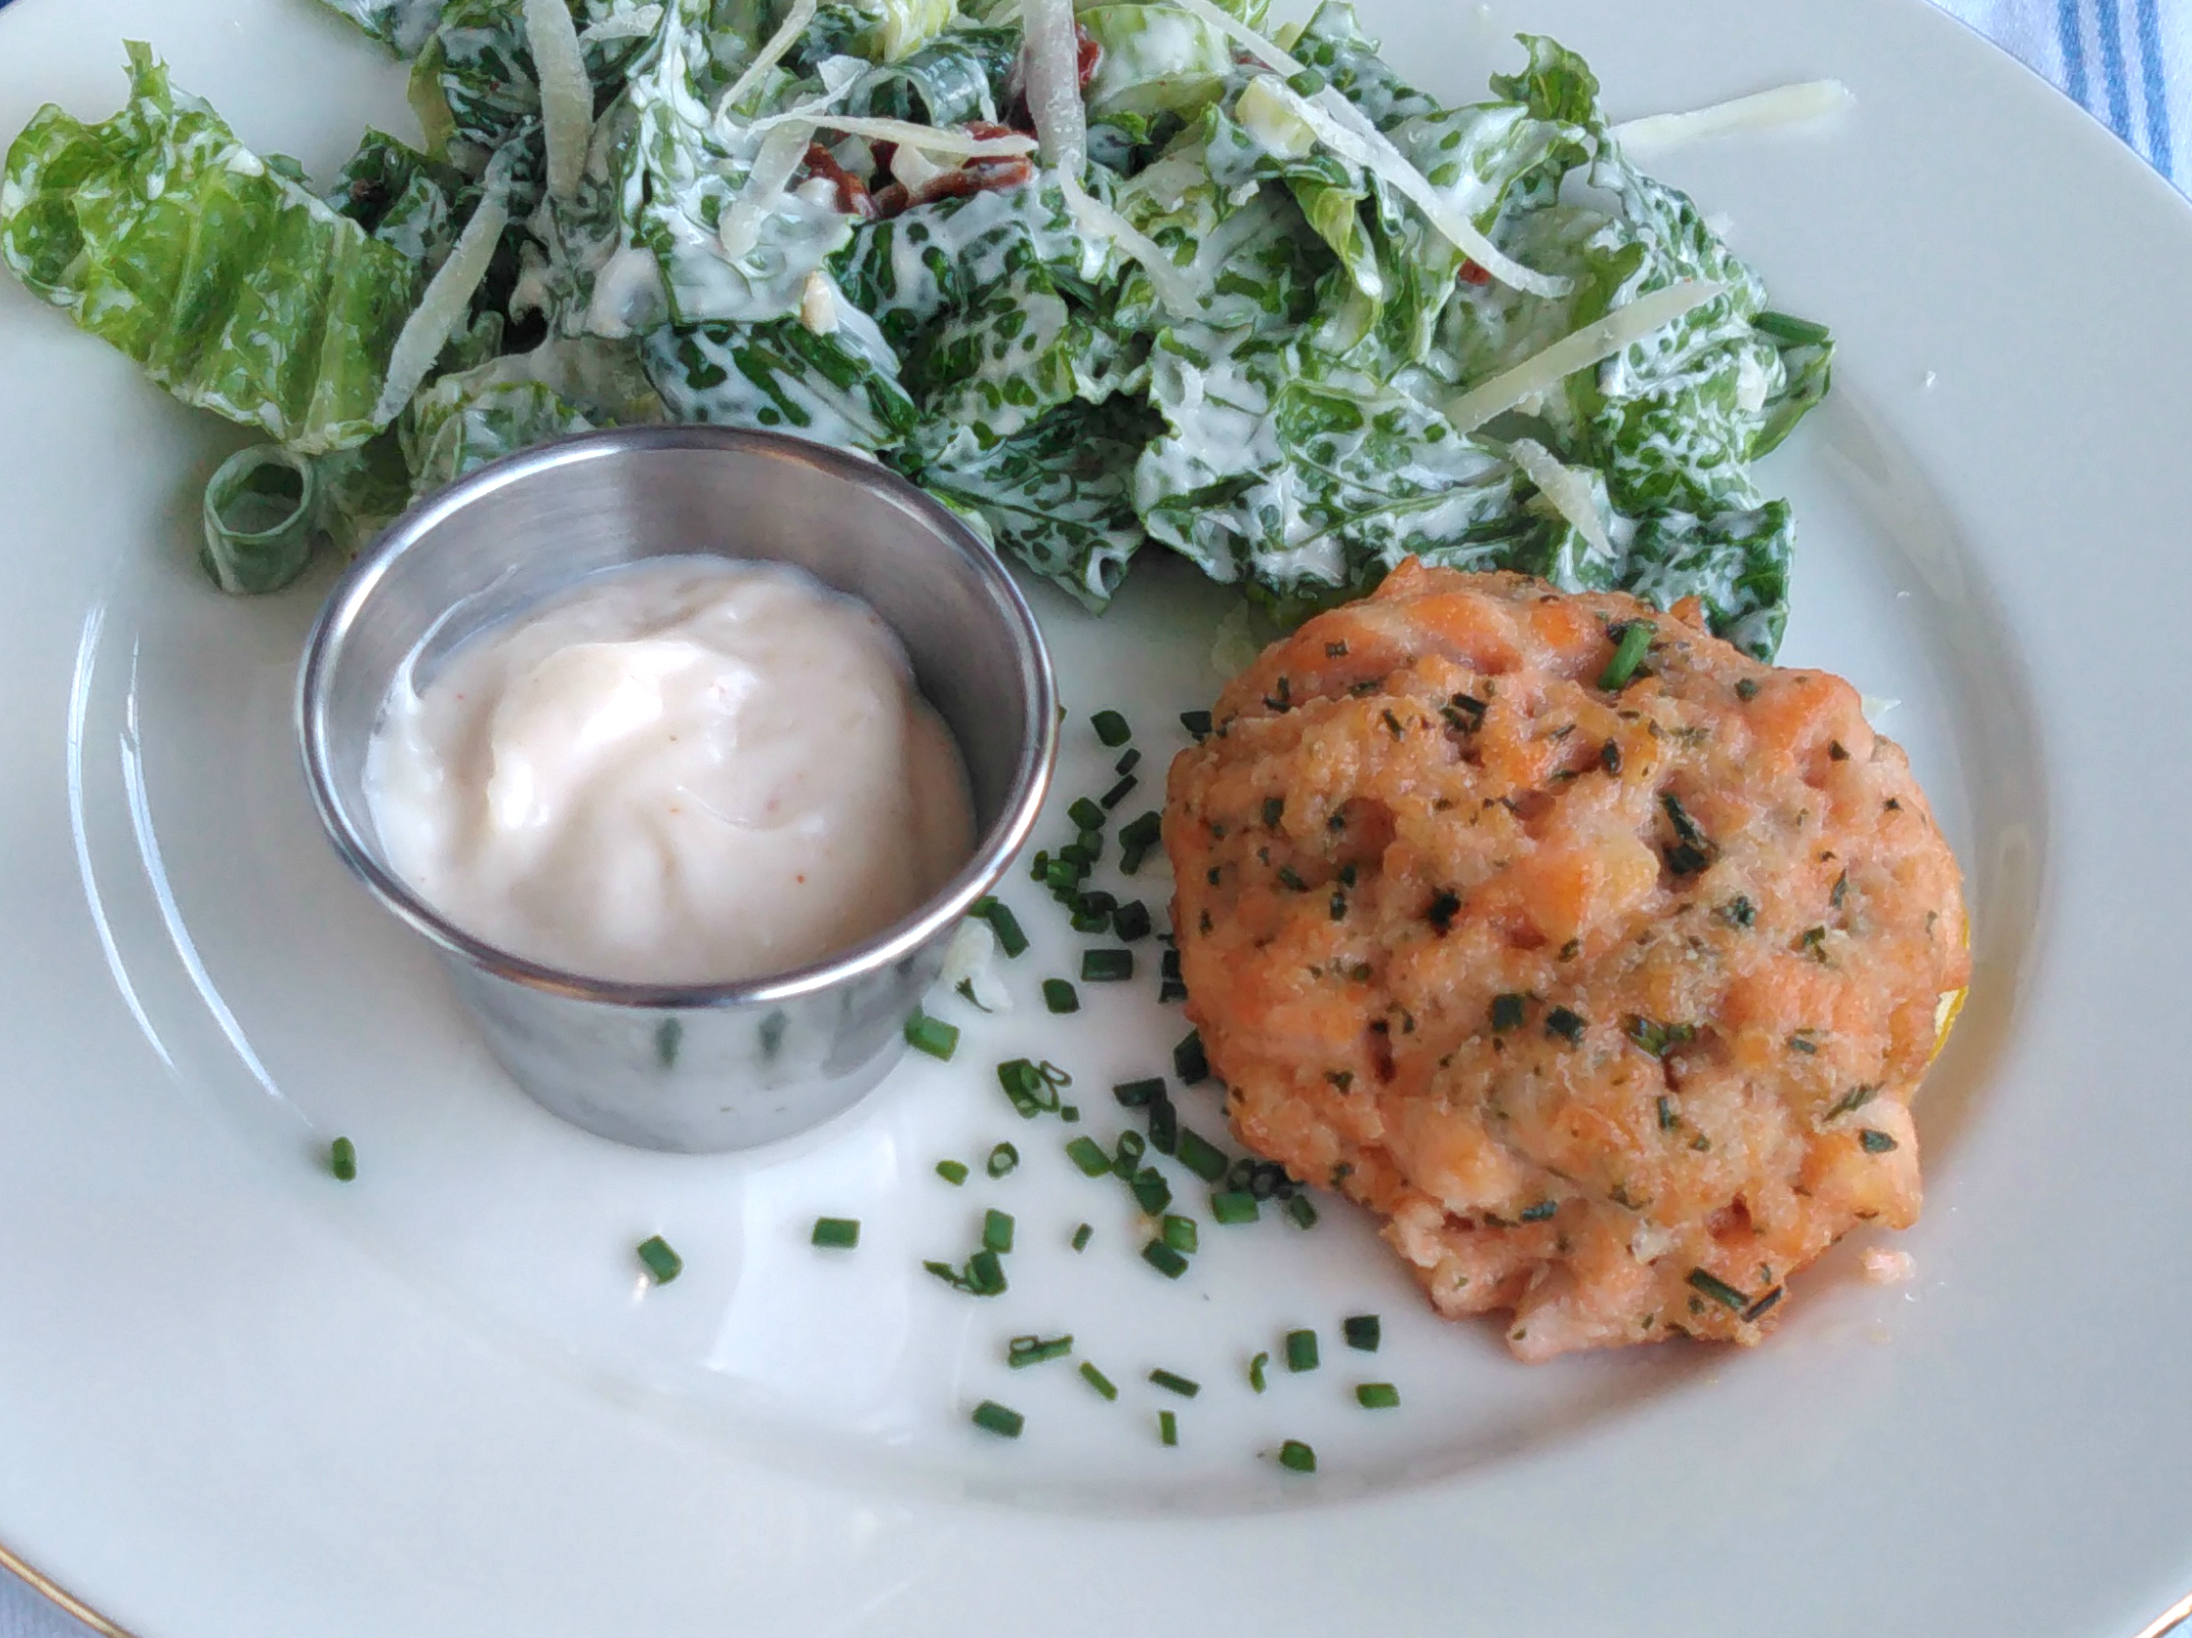 "Air-fried to crispy, golden-brown deliciousness, these minced salmon cakes are ready in less than a half hour. ""Fresh salmon patties are cooked golden in an air fryer and paired with a zesty aioli dipping sauce for an easy dinner,"" says Bren."